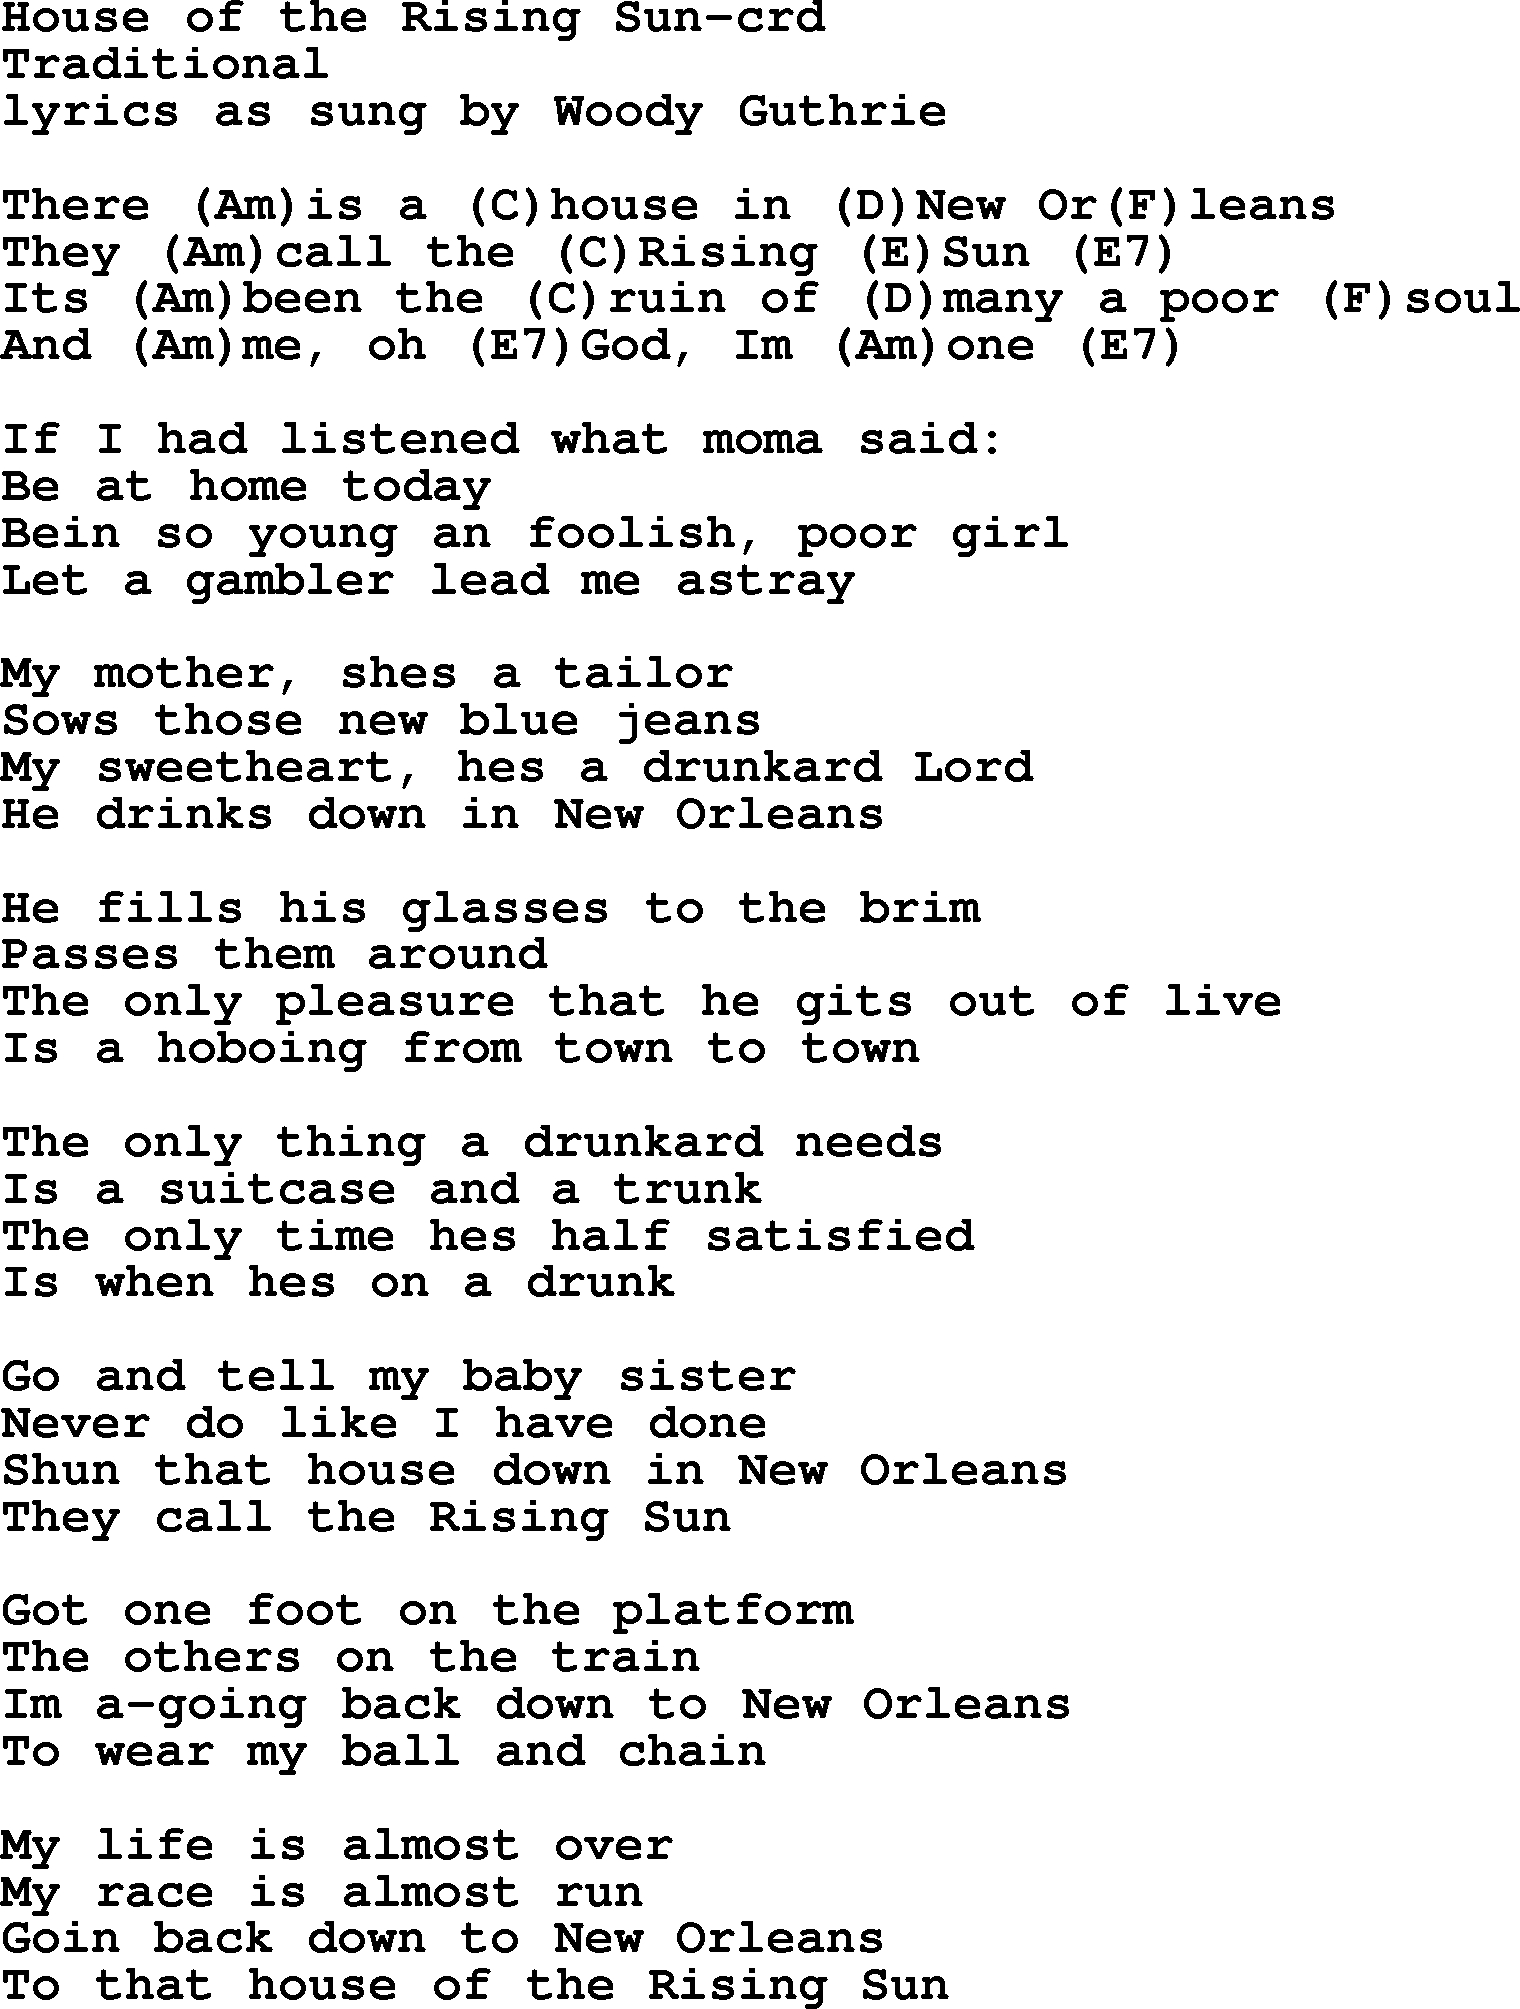 House Of The Rising Sun Chords Woody Guthrie Song House Of The Rising Sun Lyrics And Chords